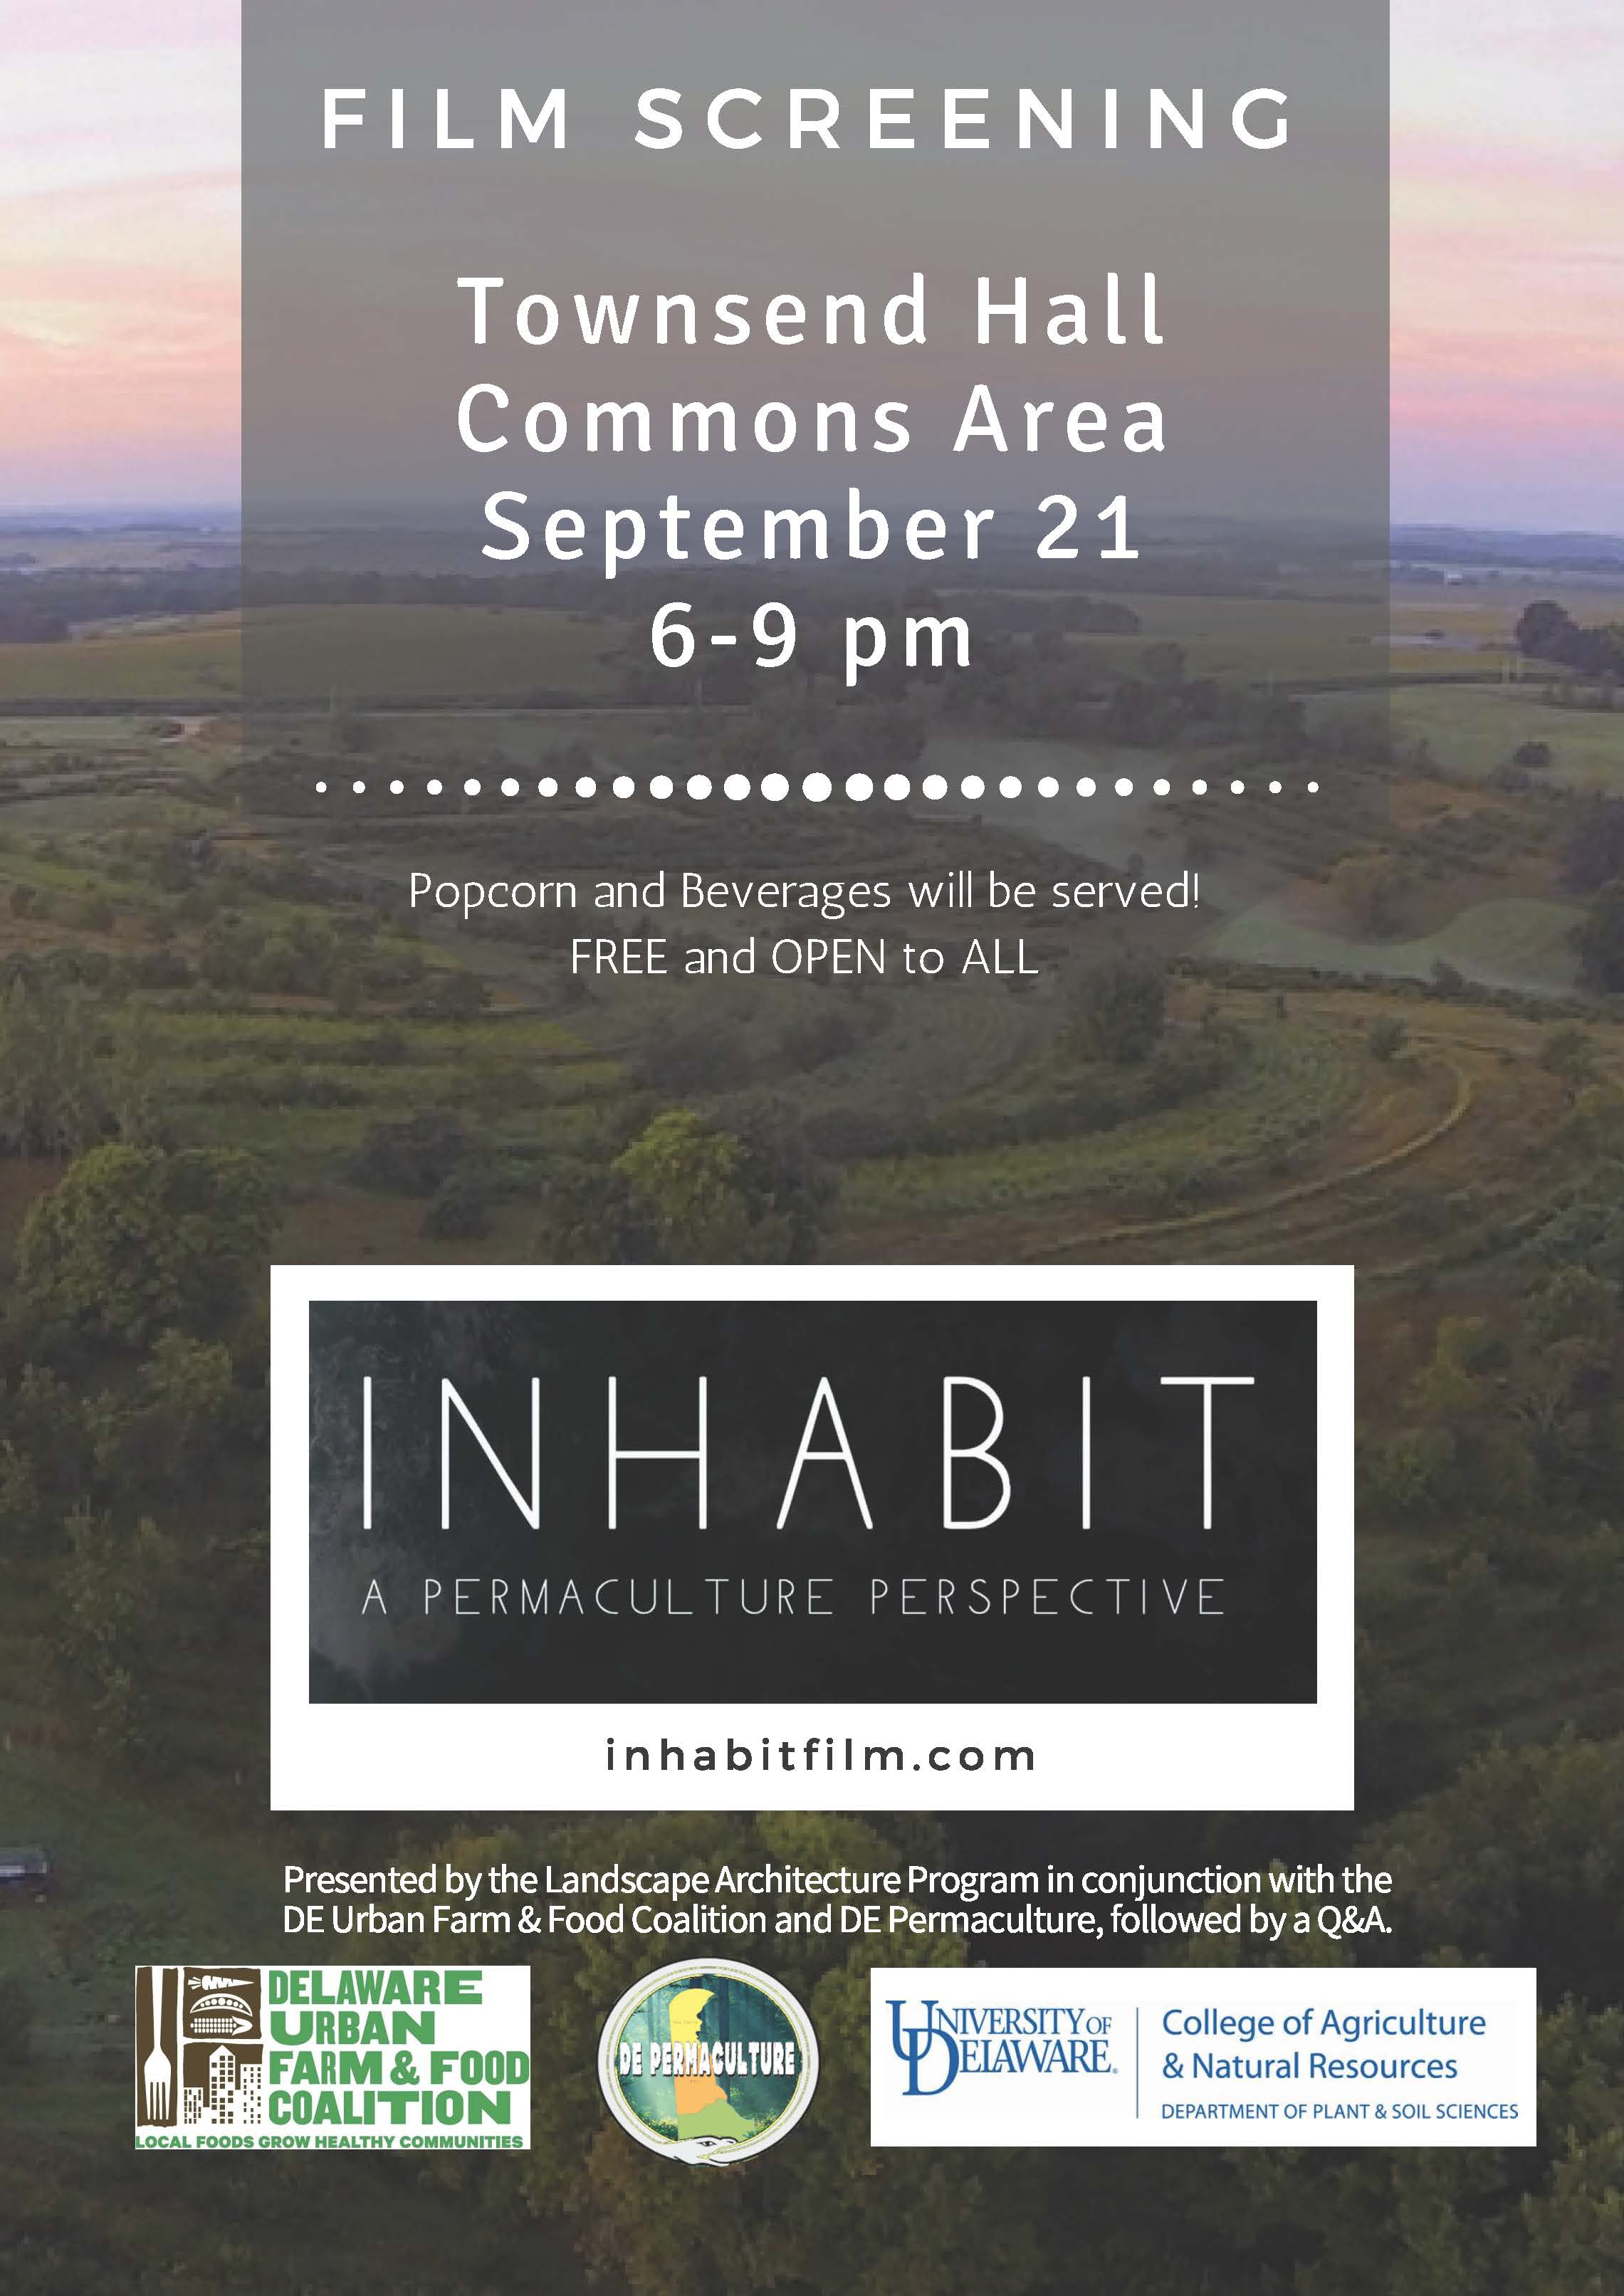 inhabit-screening